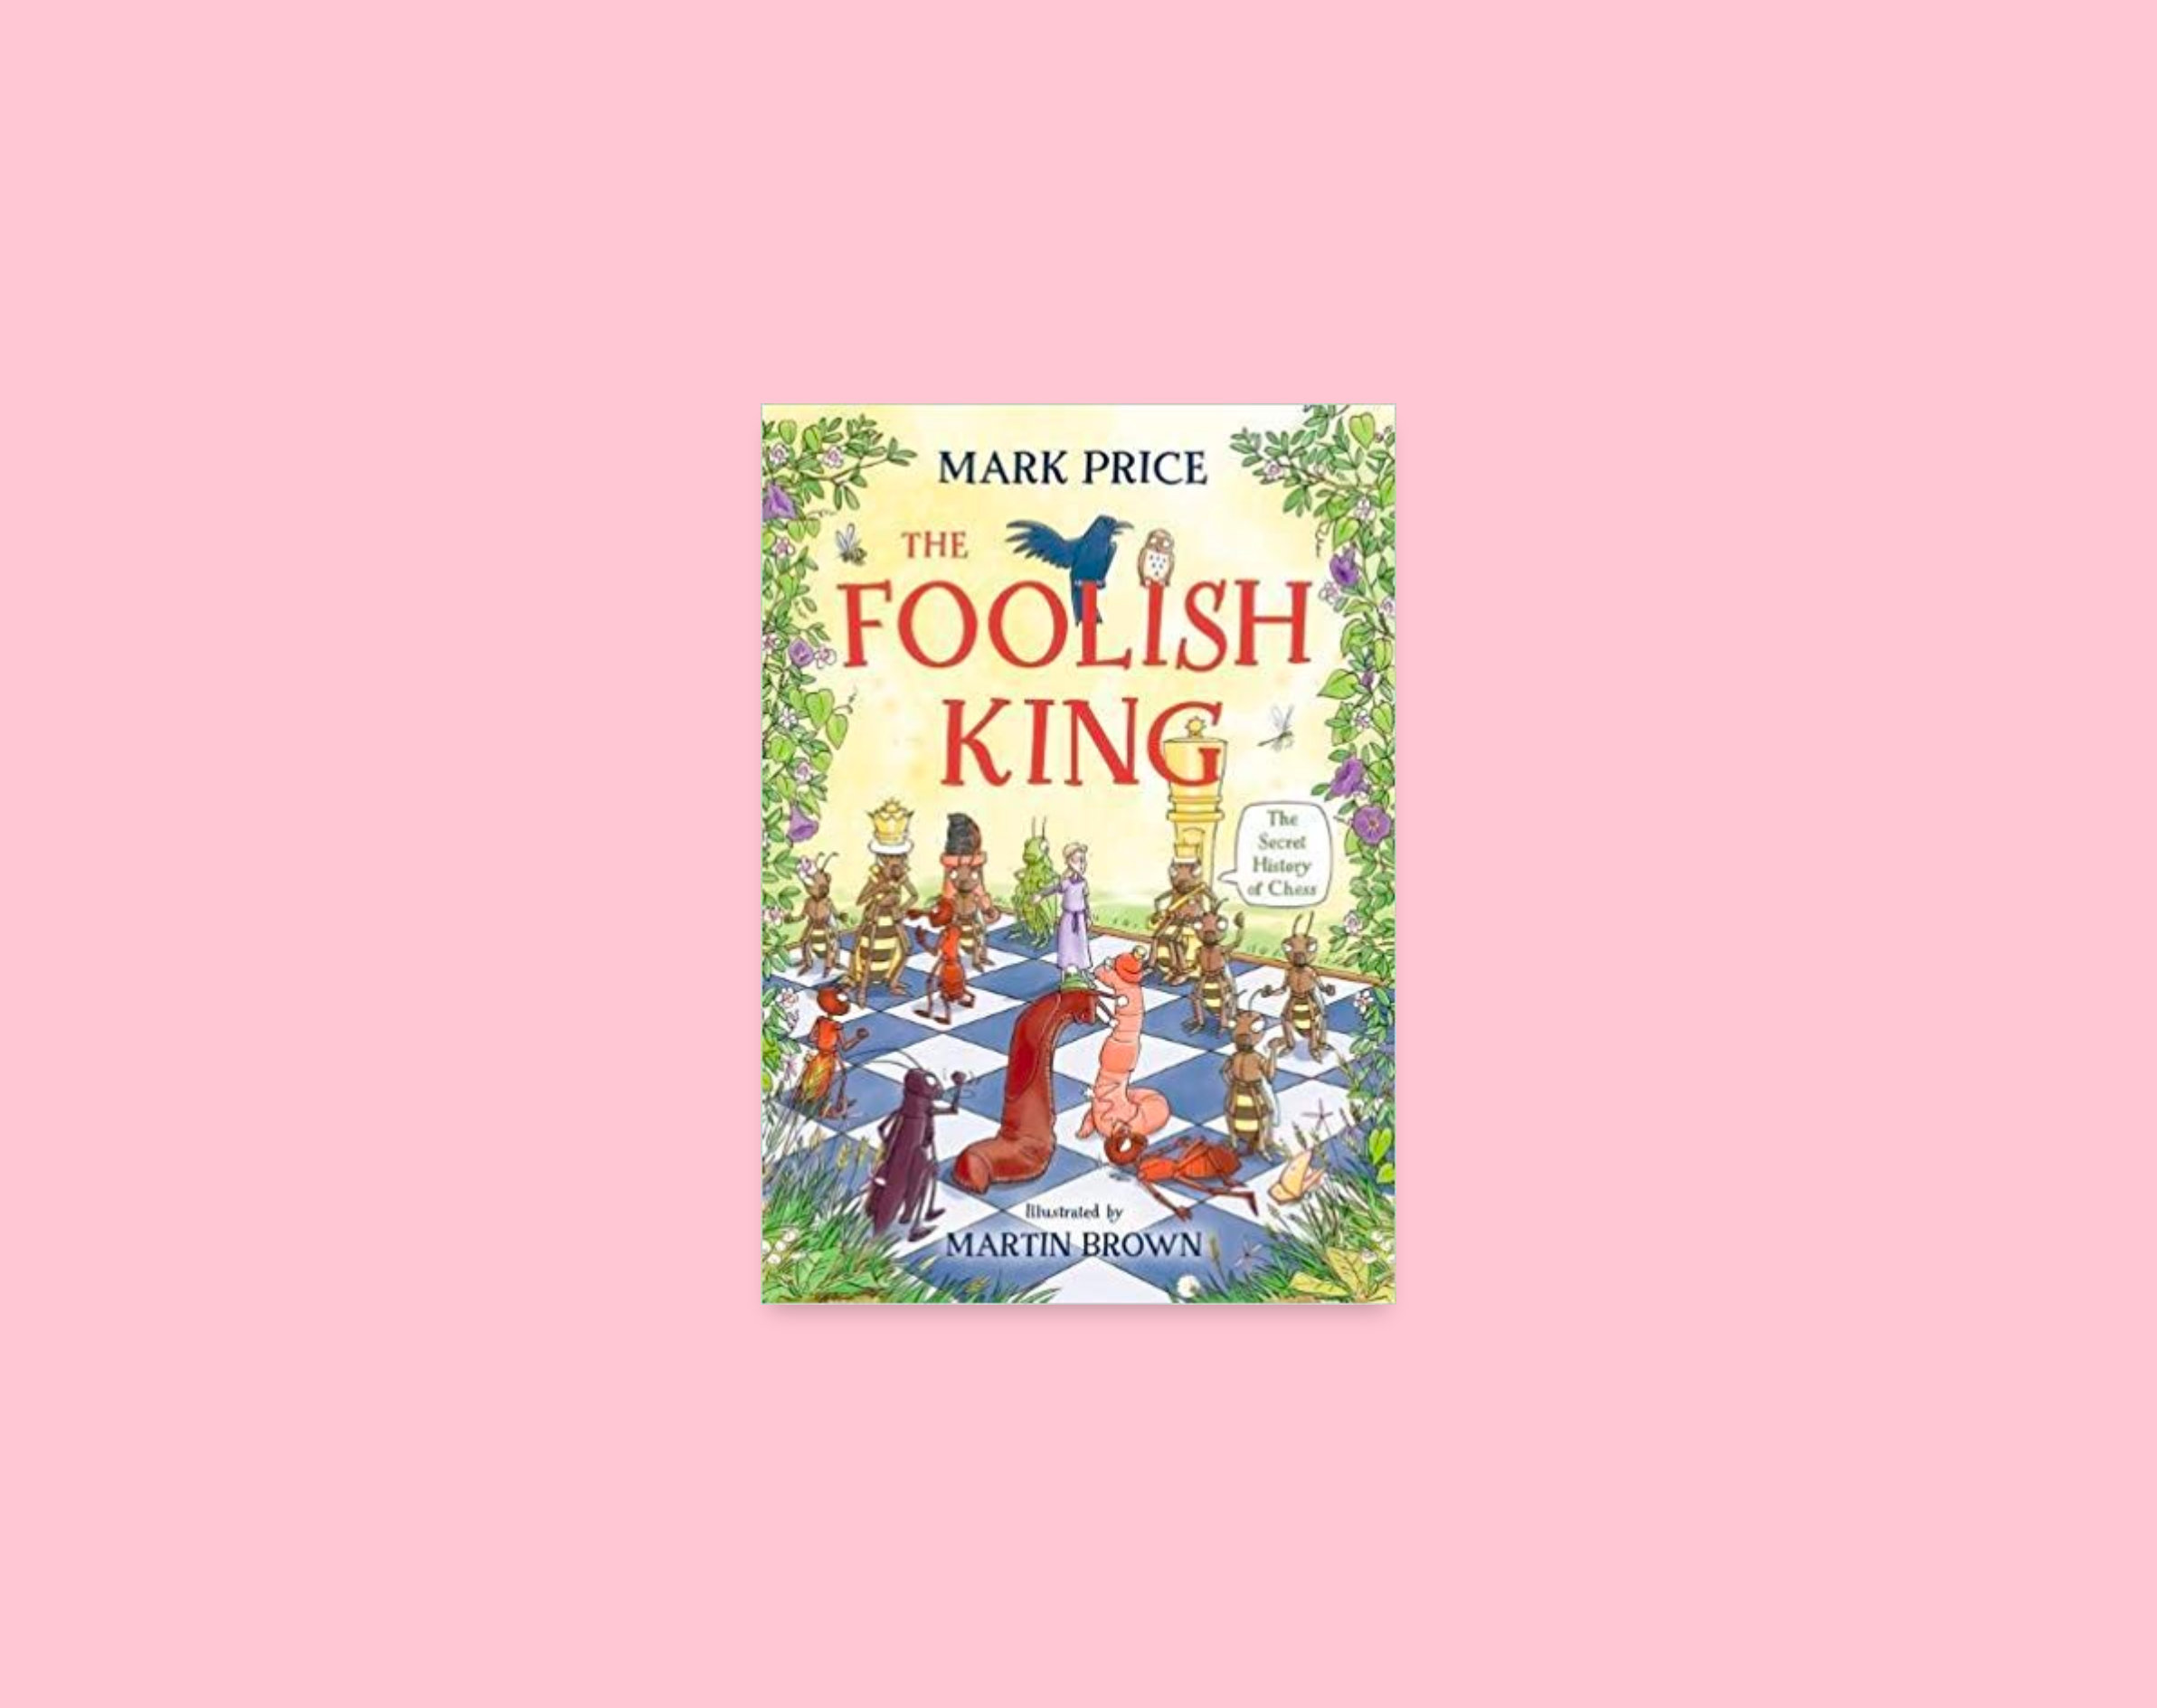 The Foolish king book